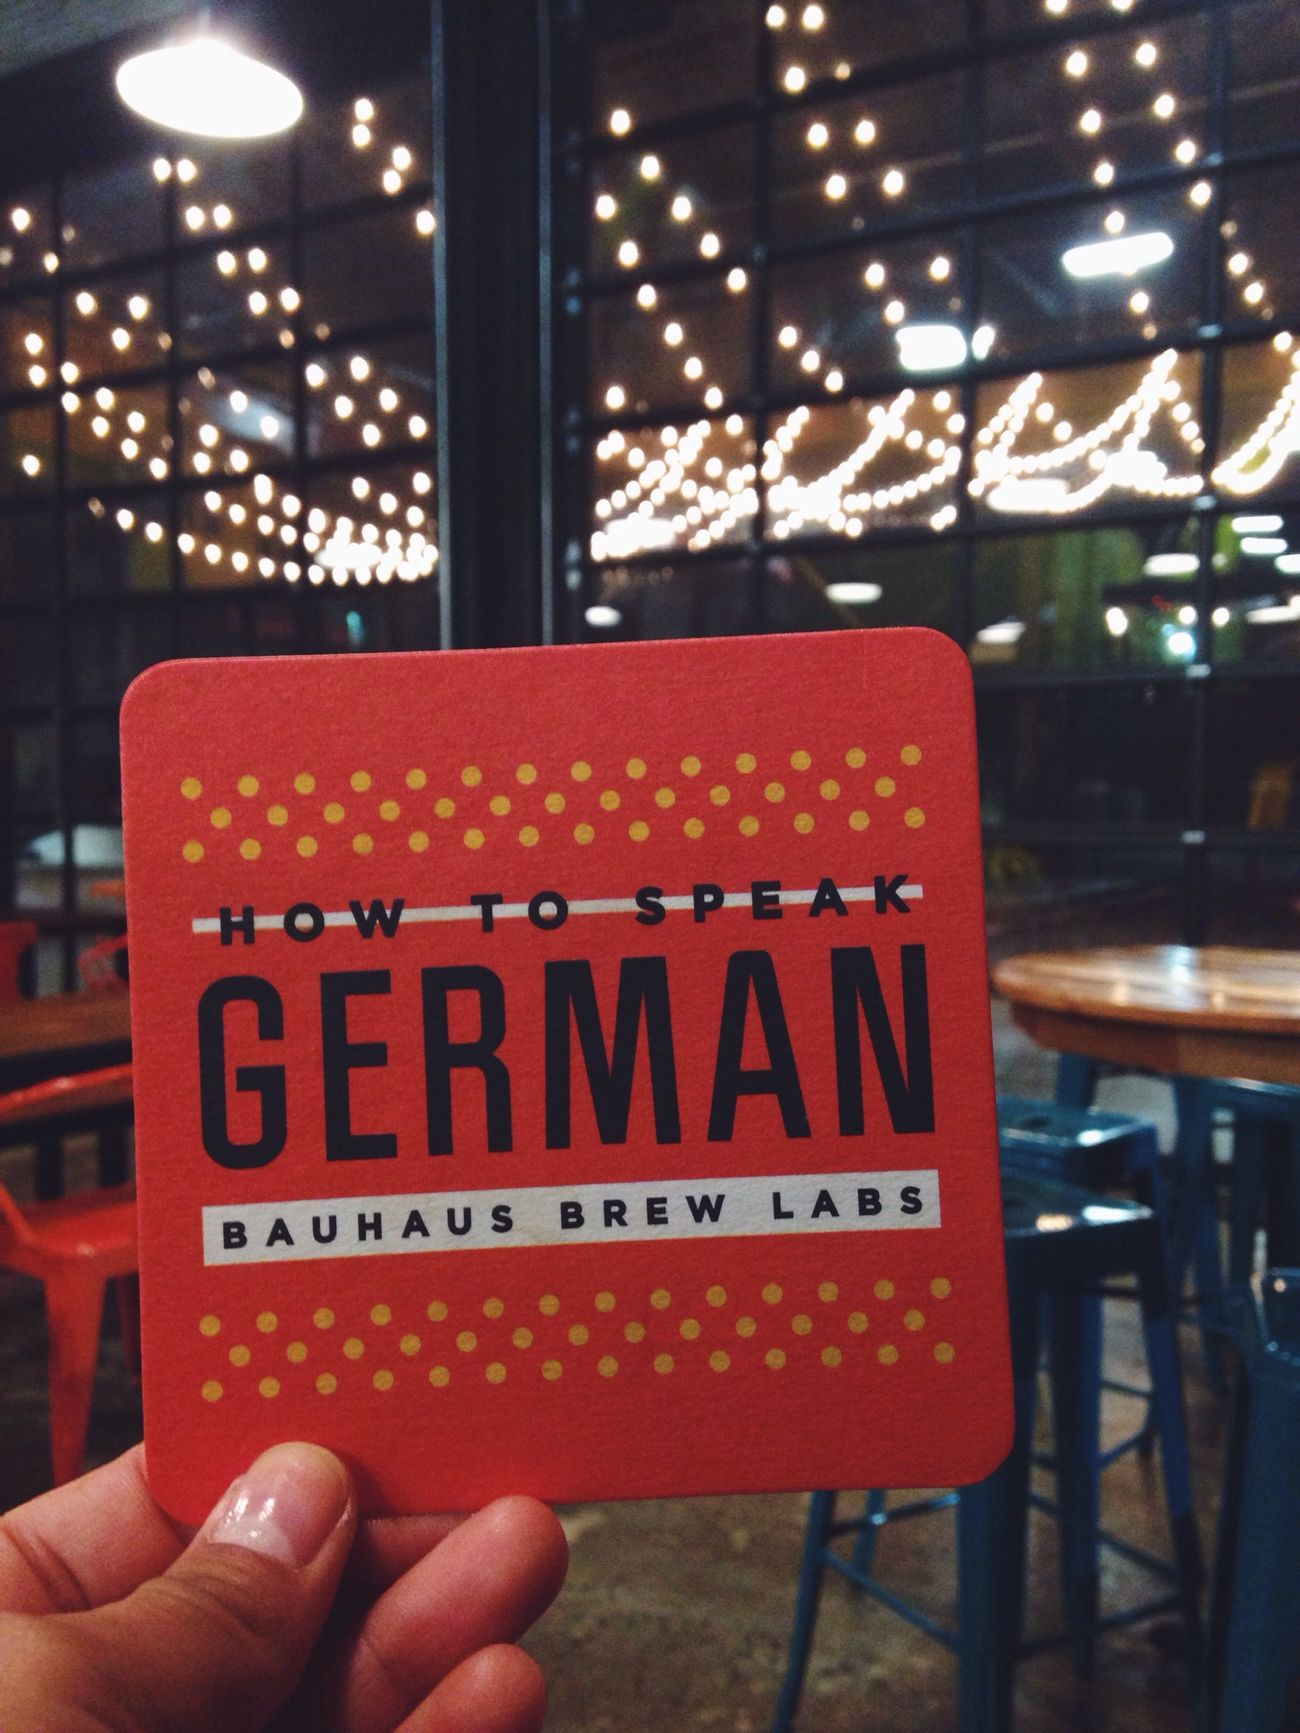 Checked this new brewery out last night...I'll be baccckkk!... Bauhaus Brewery German New Place Fun Times